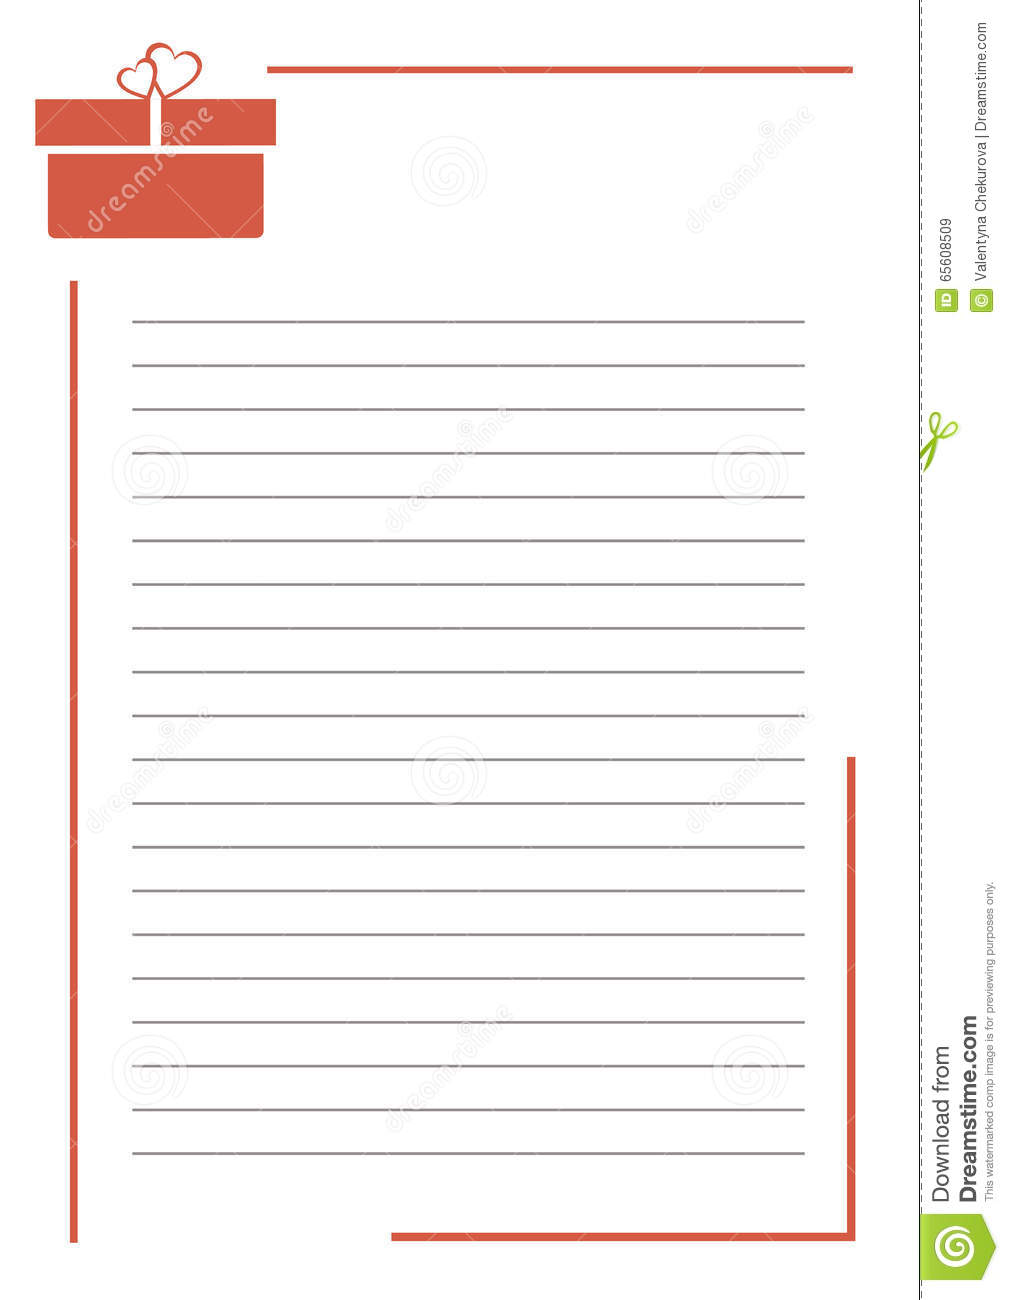 004 Example Of Notecards For Research Paper Vector Blank Letter Greeting Card White Form Red Gift Box Lines Border Format Size Fascinating How To Write A Mla Writing Full